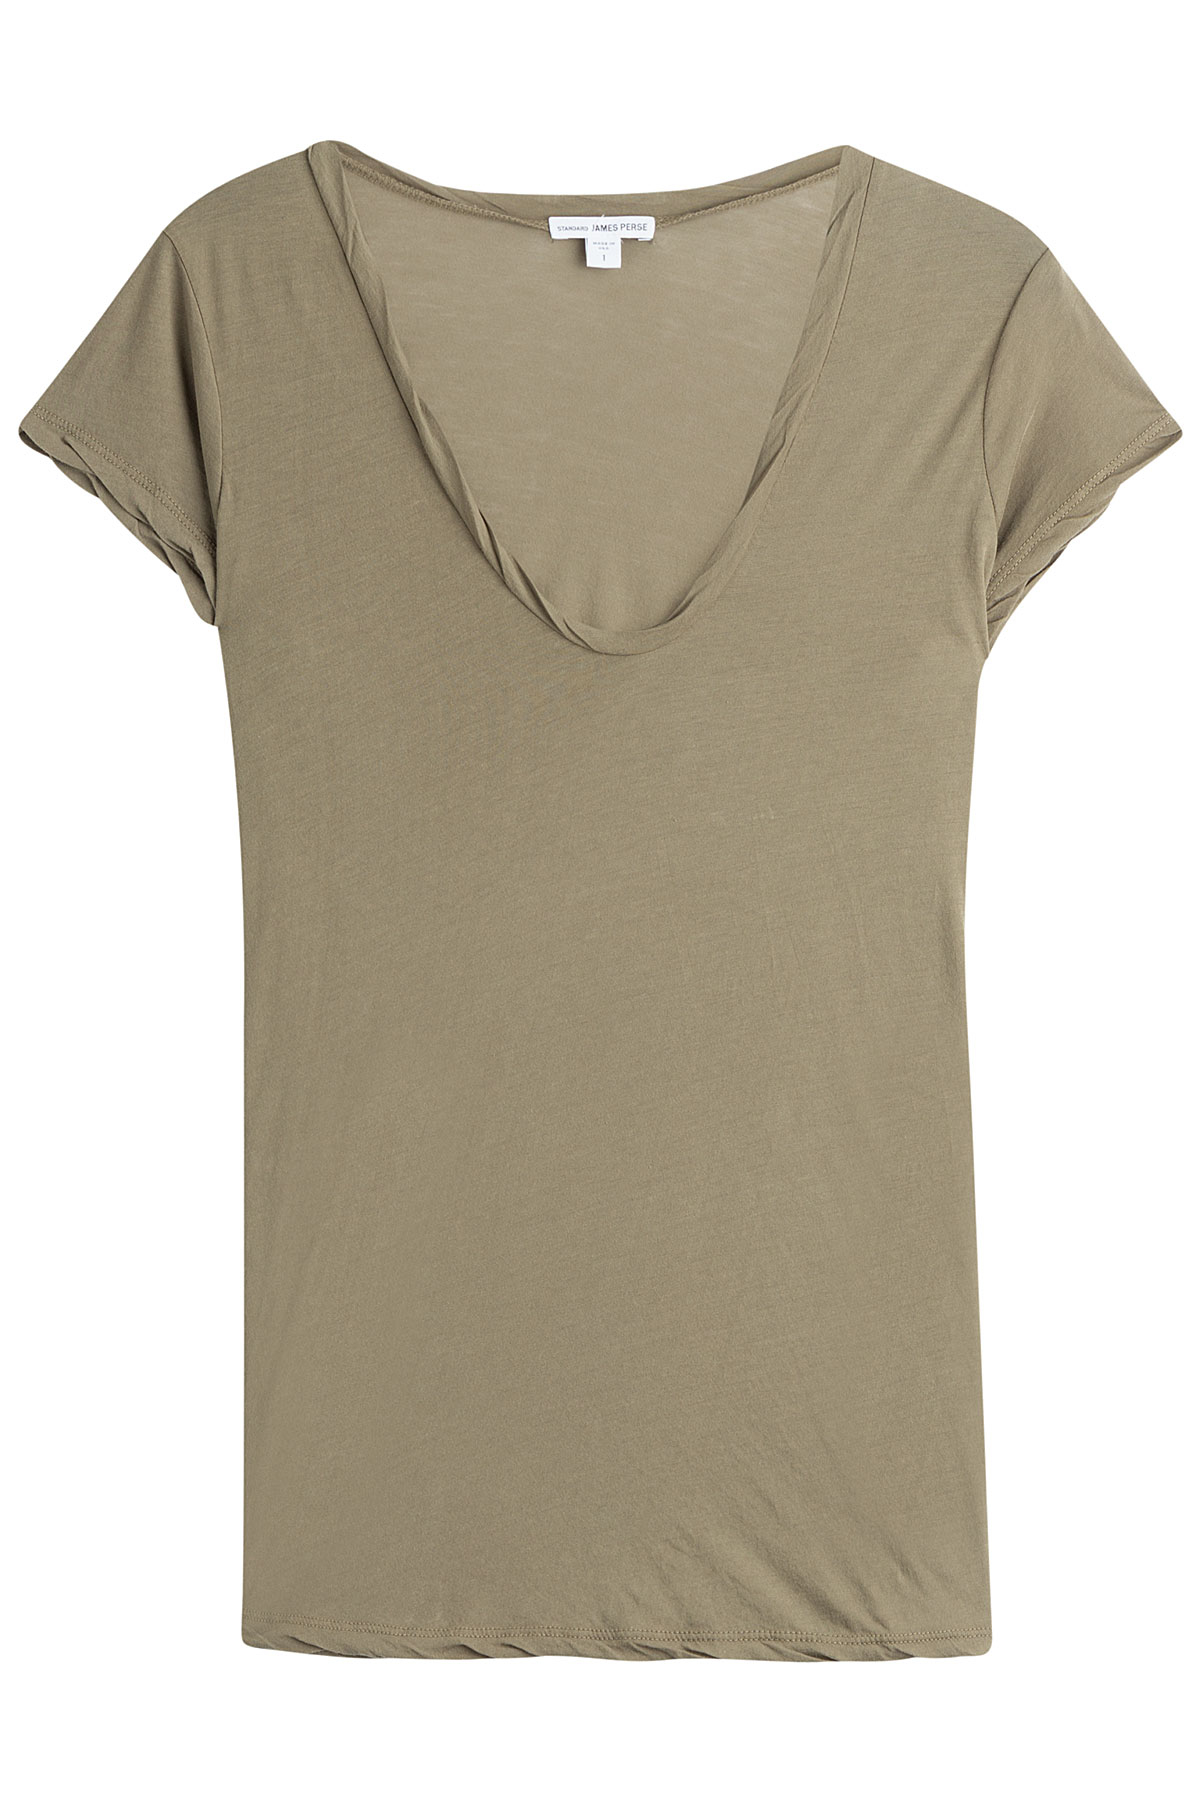 James perse cotton t shirt in green lyst for James perse t shirts sale